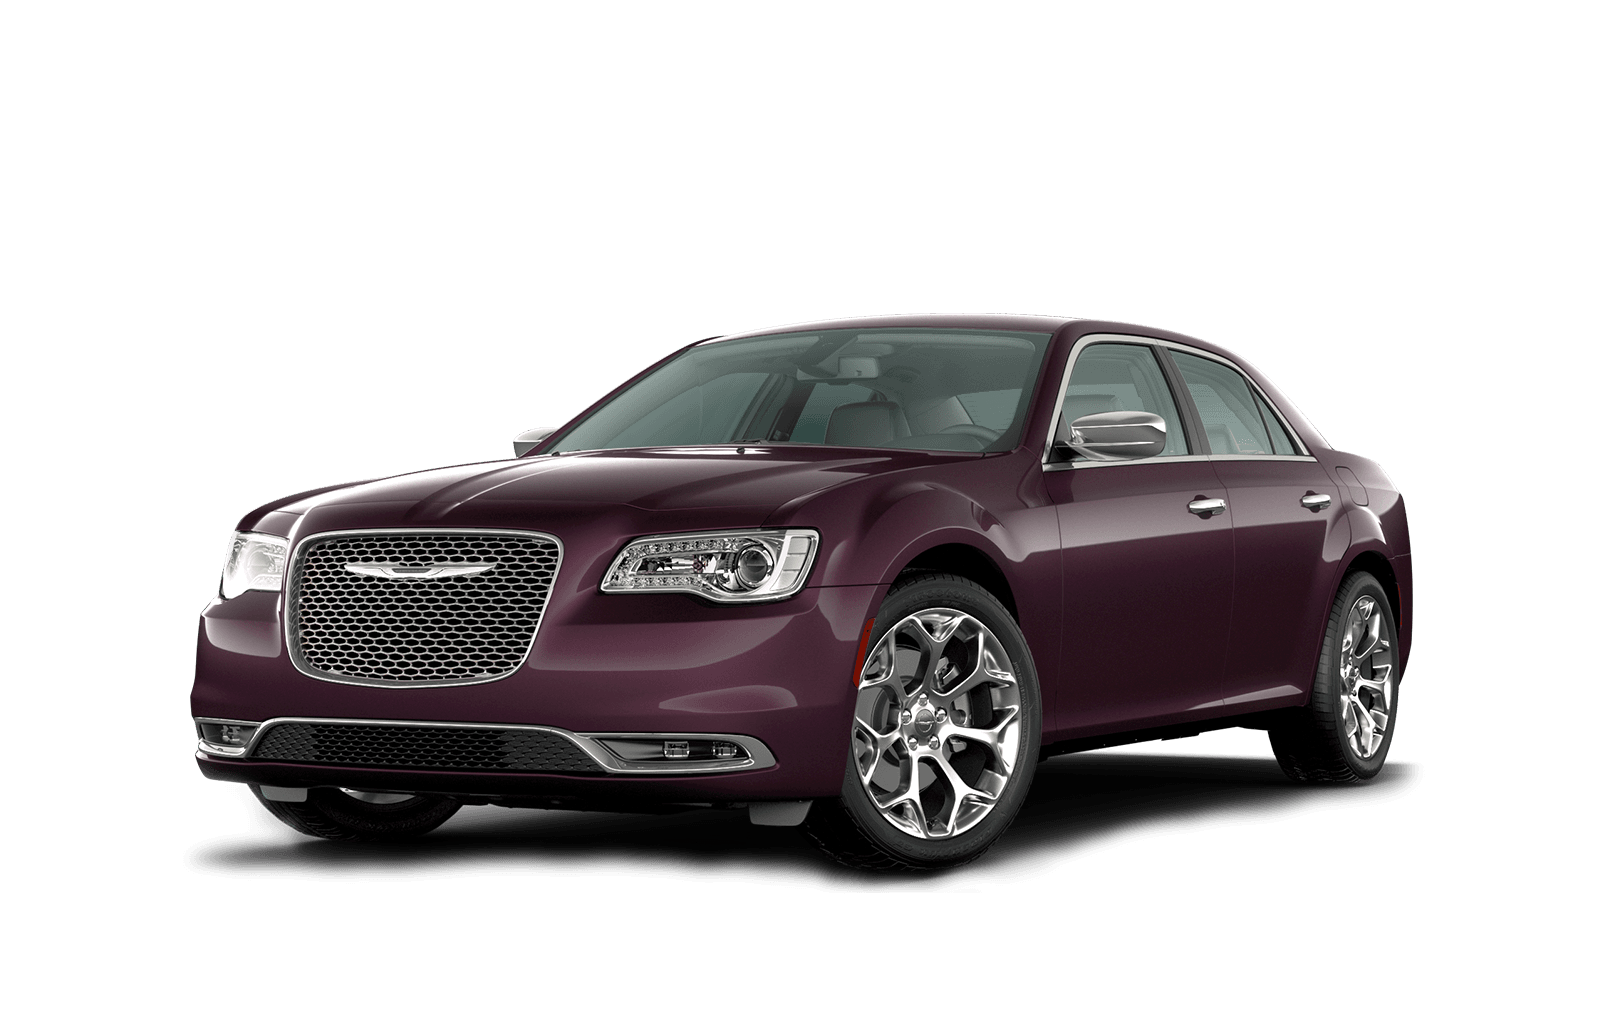 2020 Chrysler 300 Full View in Amethyst with Wheels